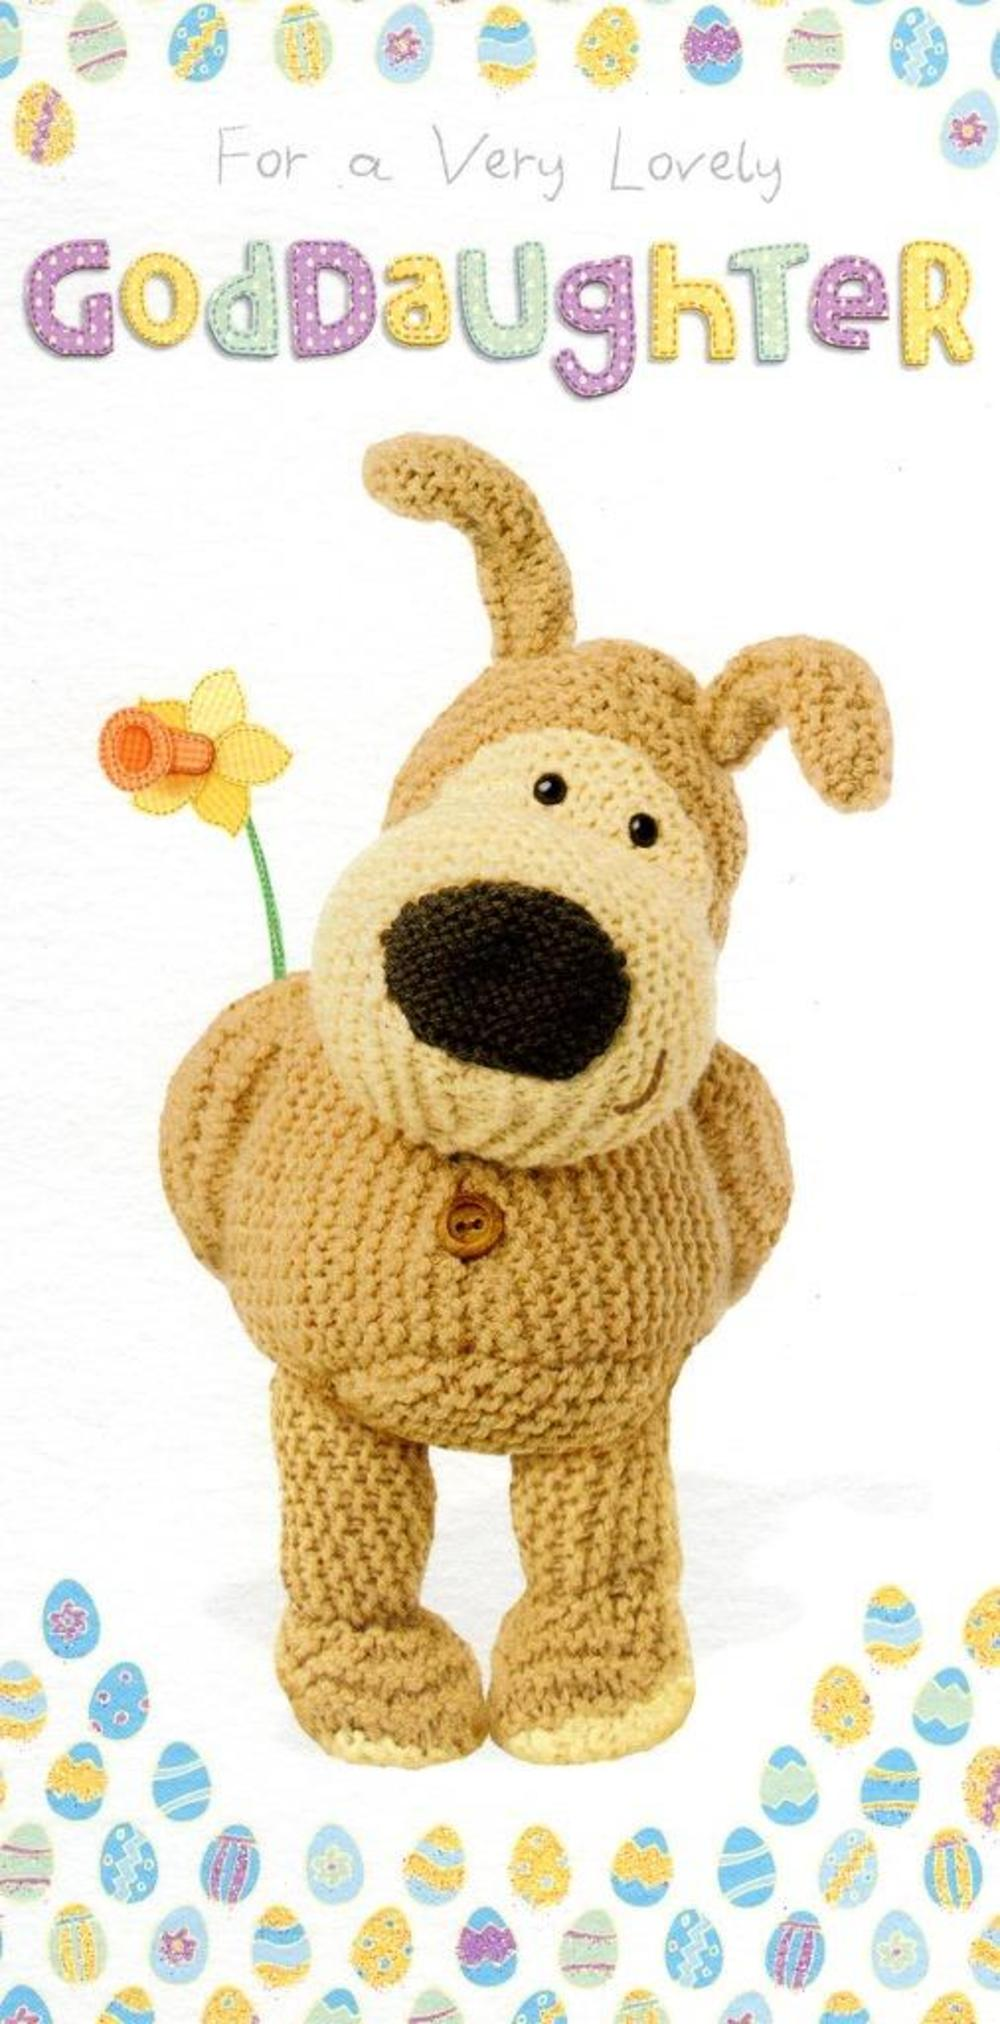 Boofle Goddaughter Happy Easter Greeting Card